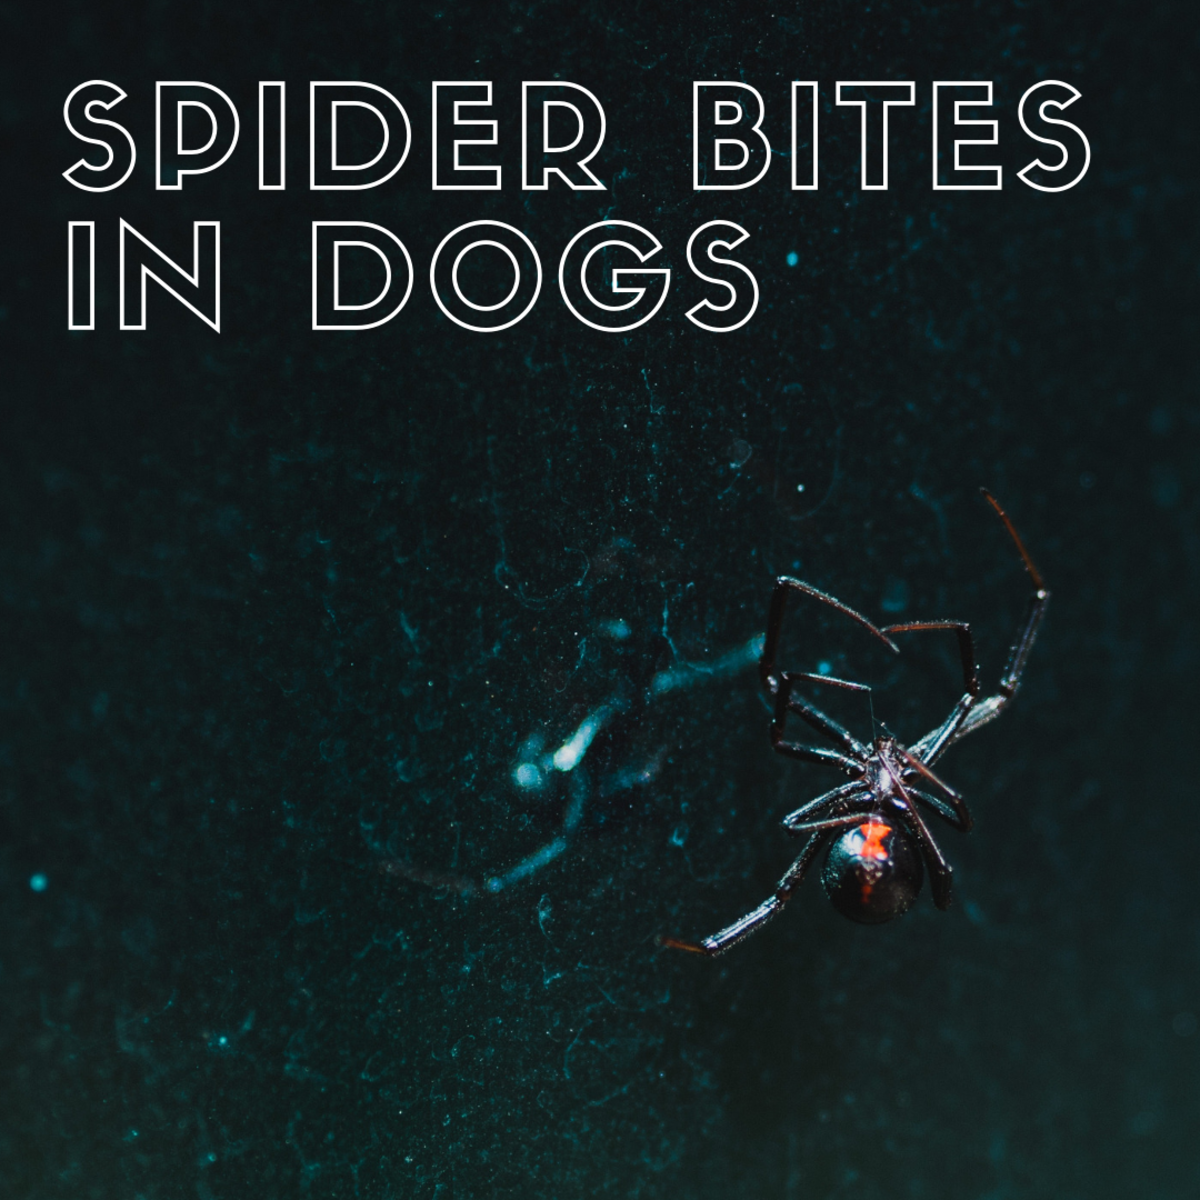 Spider bites in dogs.